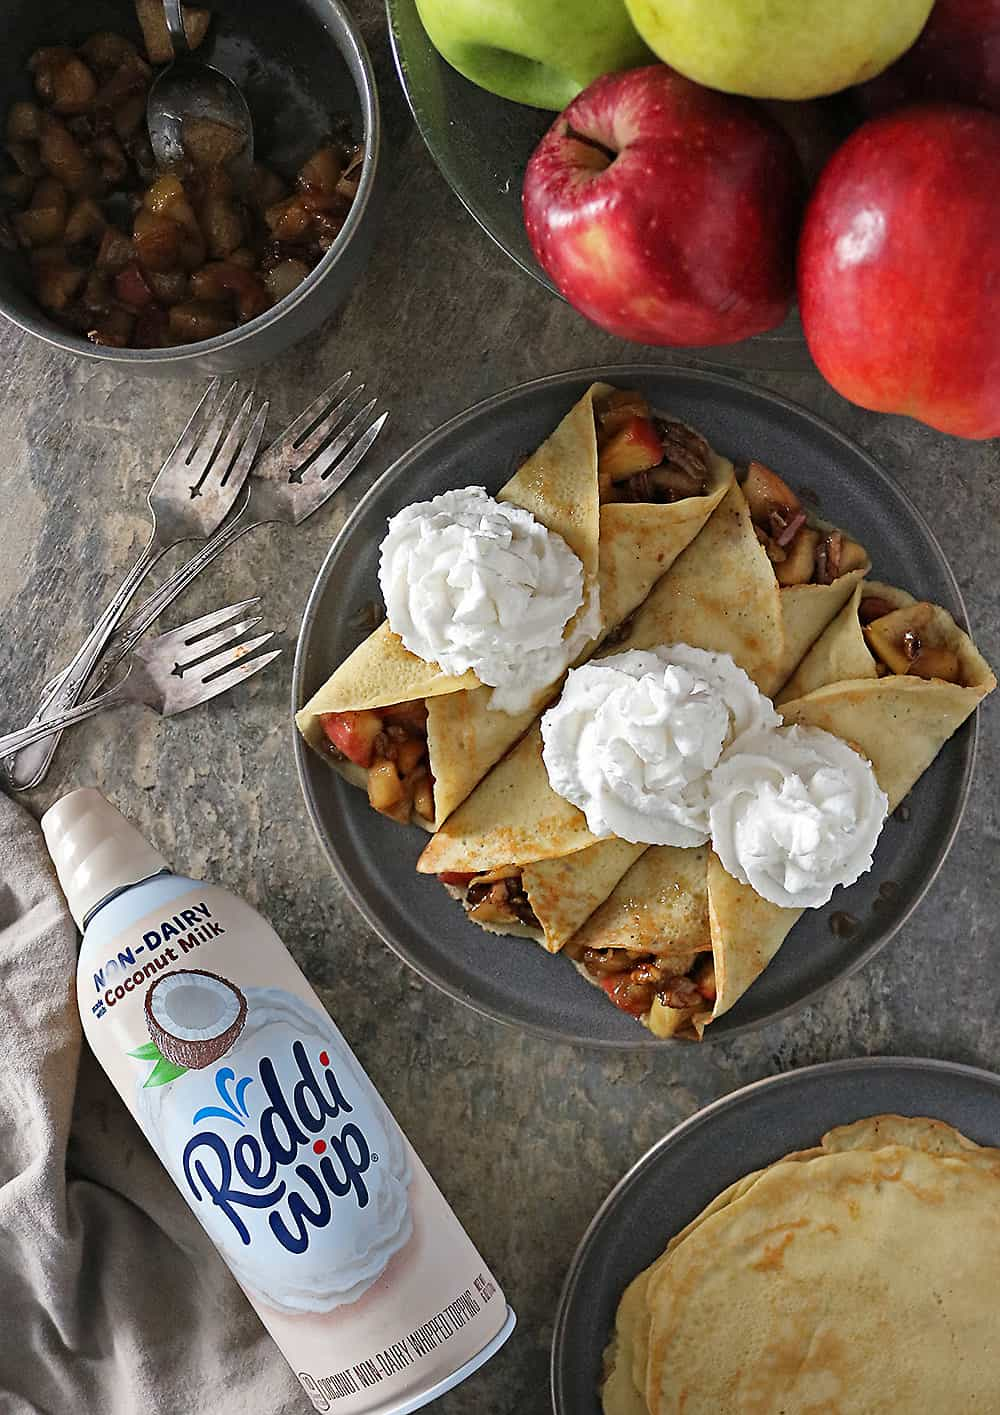 Ginger Cardamom Crepes with Apple Pear Filling Photo